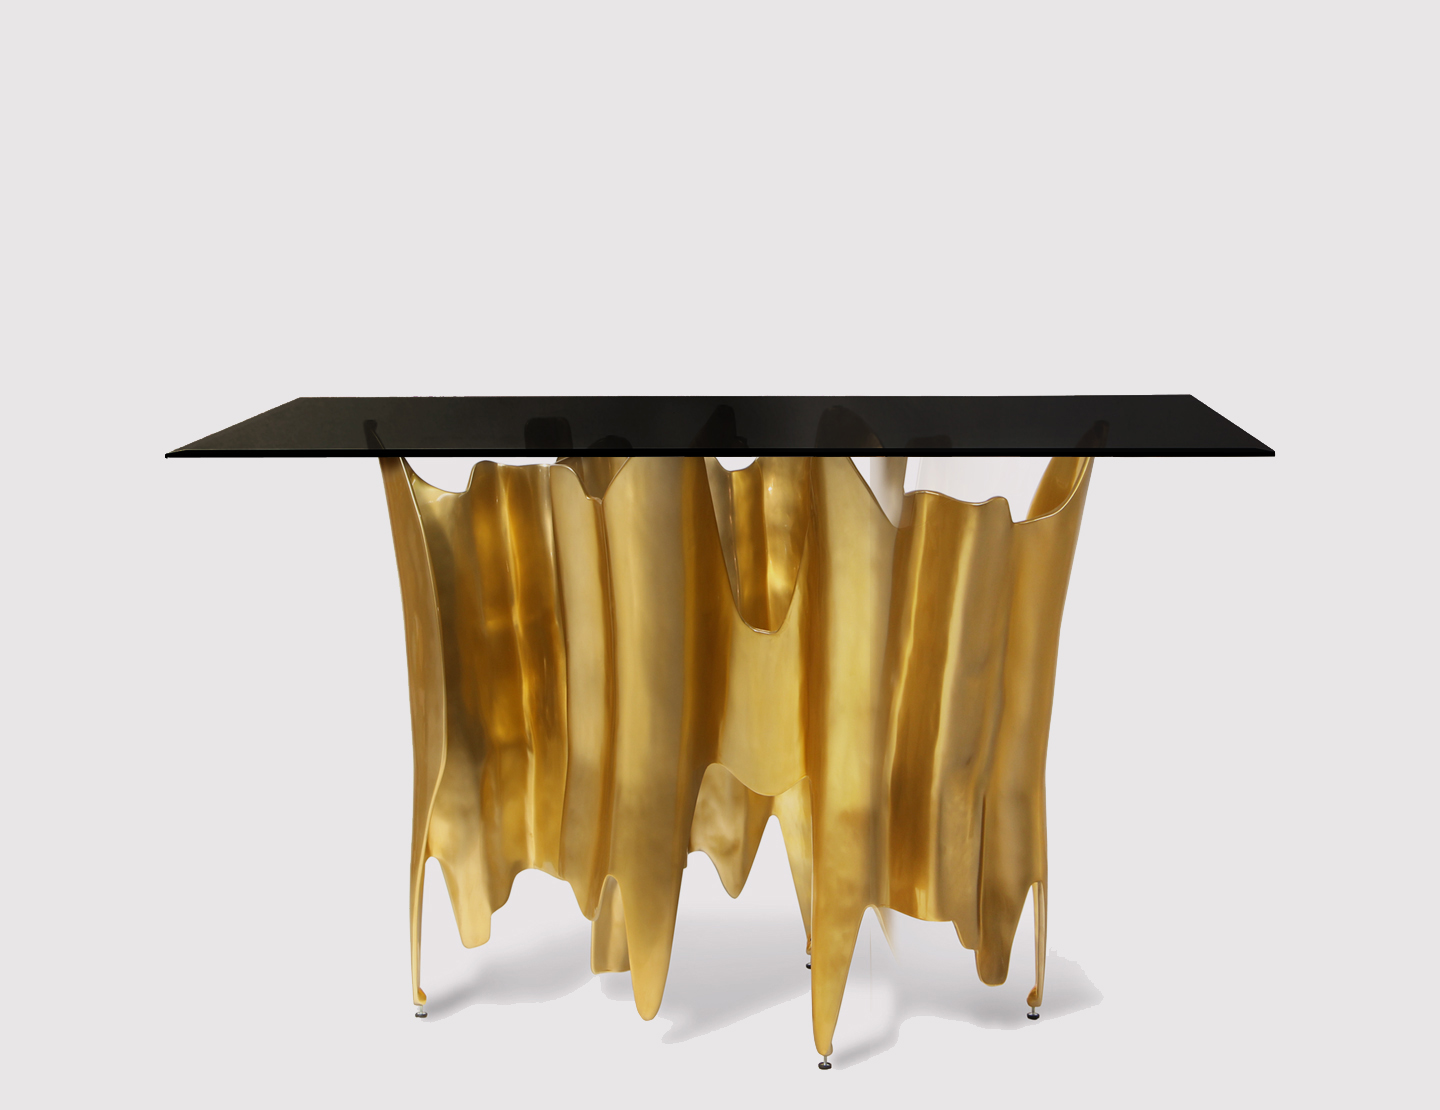 accent console table home decor gallery obssedia zoom big gold koket black monarch nursery changing curved patio umbrella drummer stool with backrest round cover marble top coffee